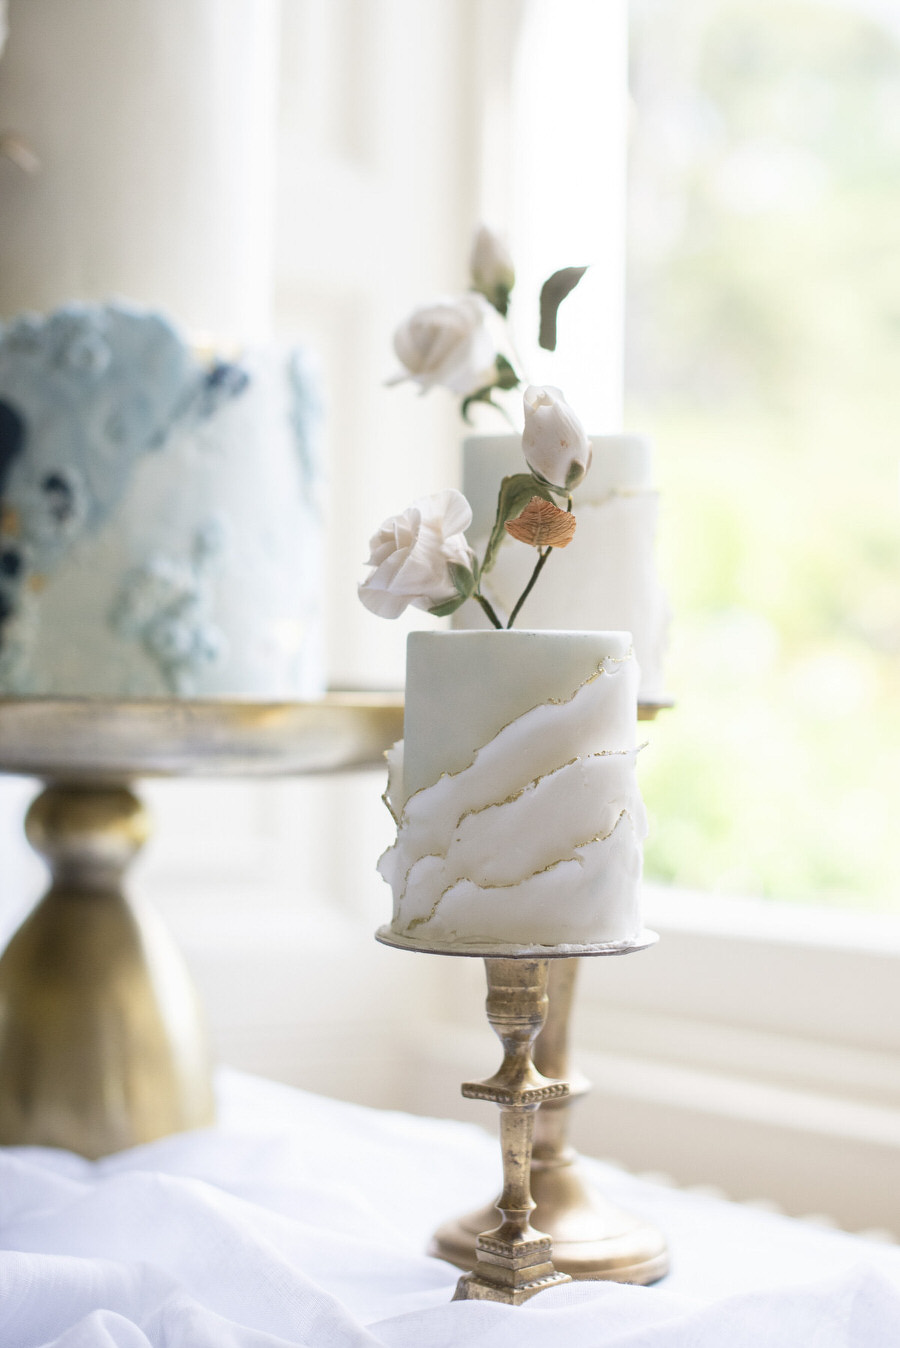 Pynes House wedding styling ideas with Ailsa Munro, Sarah Shuttle and Lottie Ettling PHotography (17)